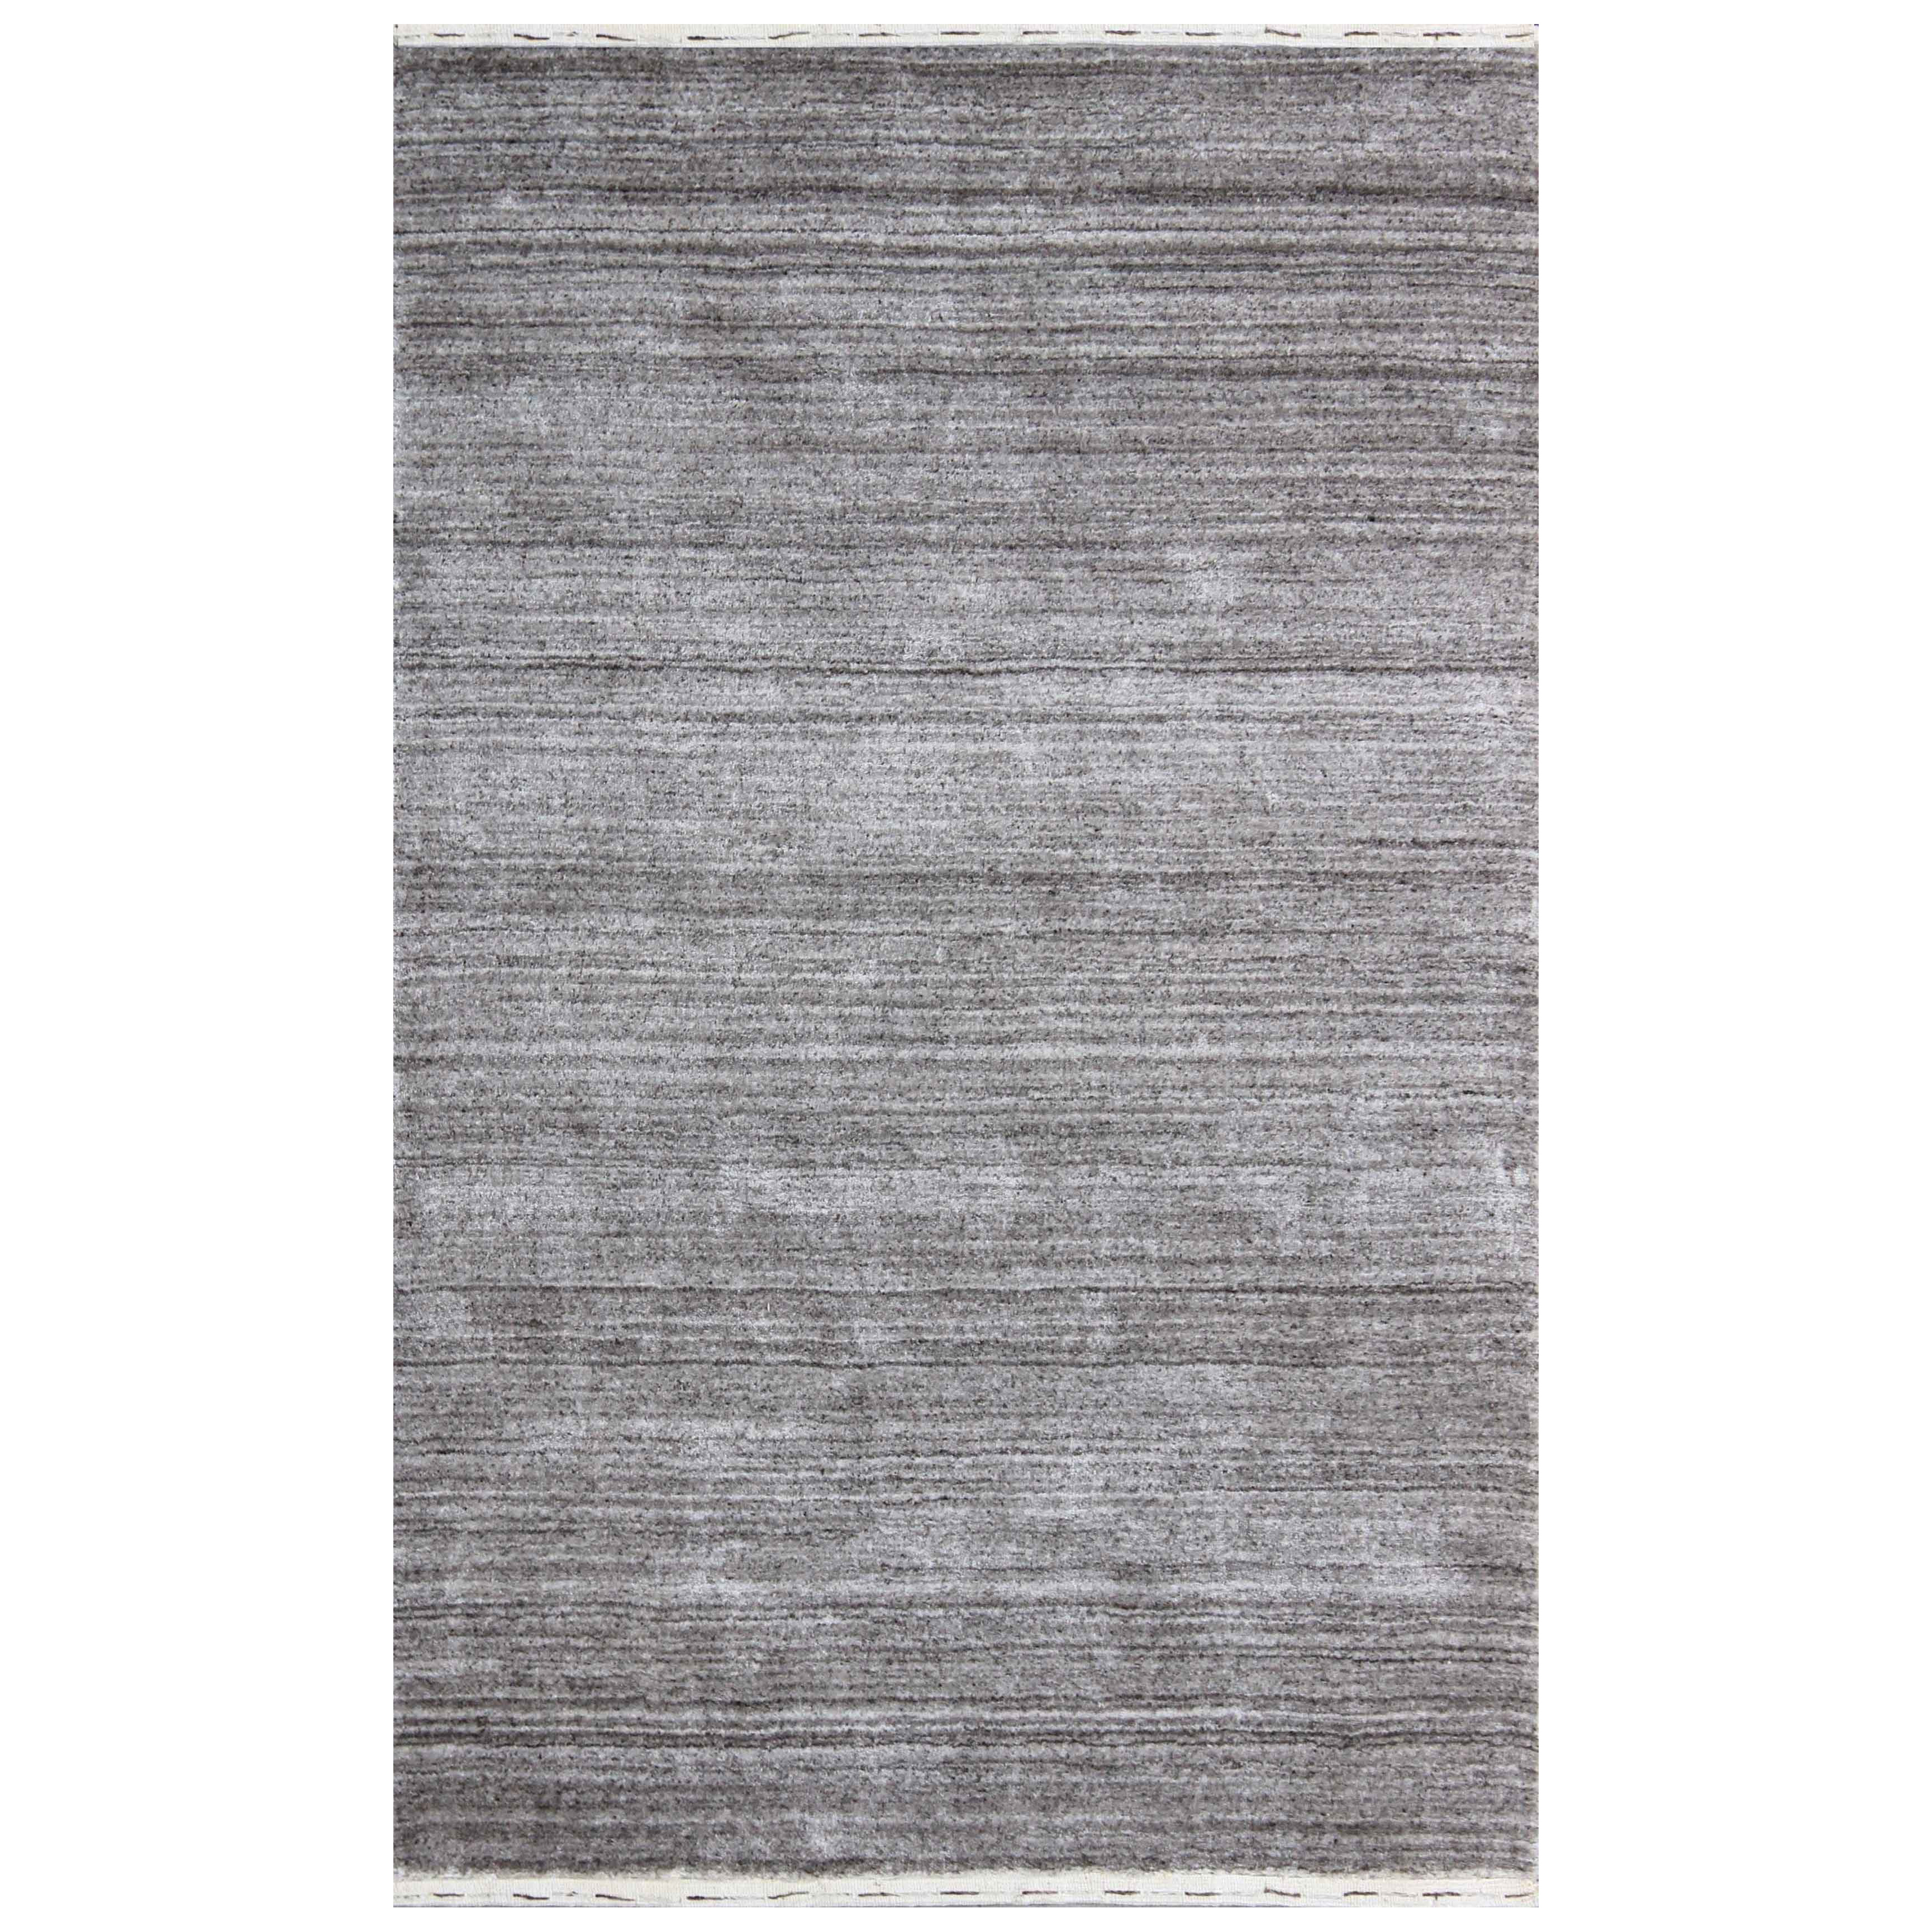 Gabbeh Rugs In Silver Buy Online From The Rug Seller Uk